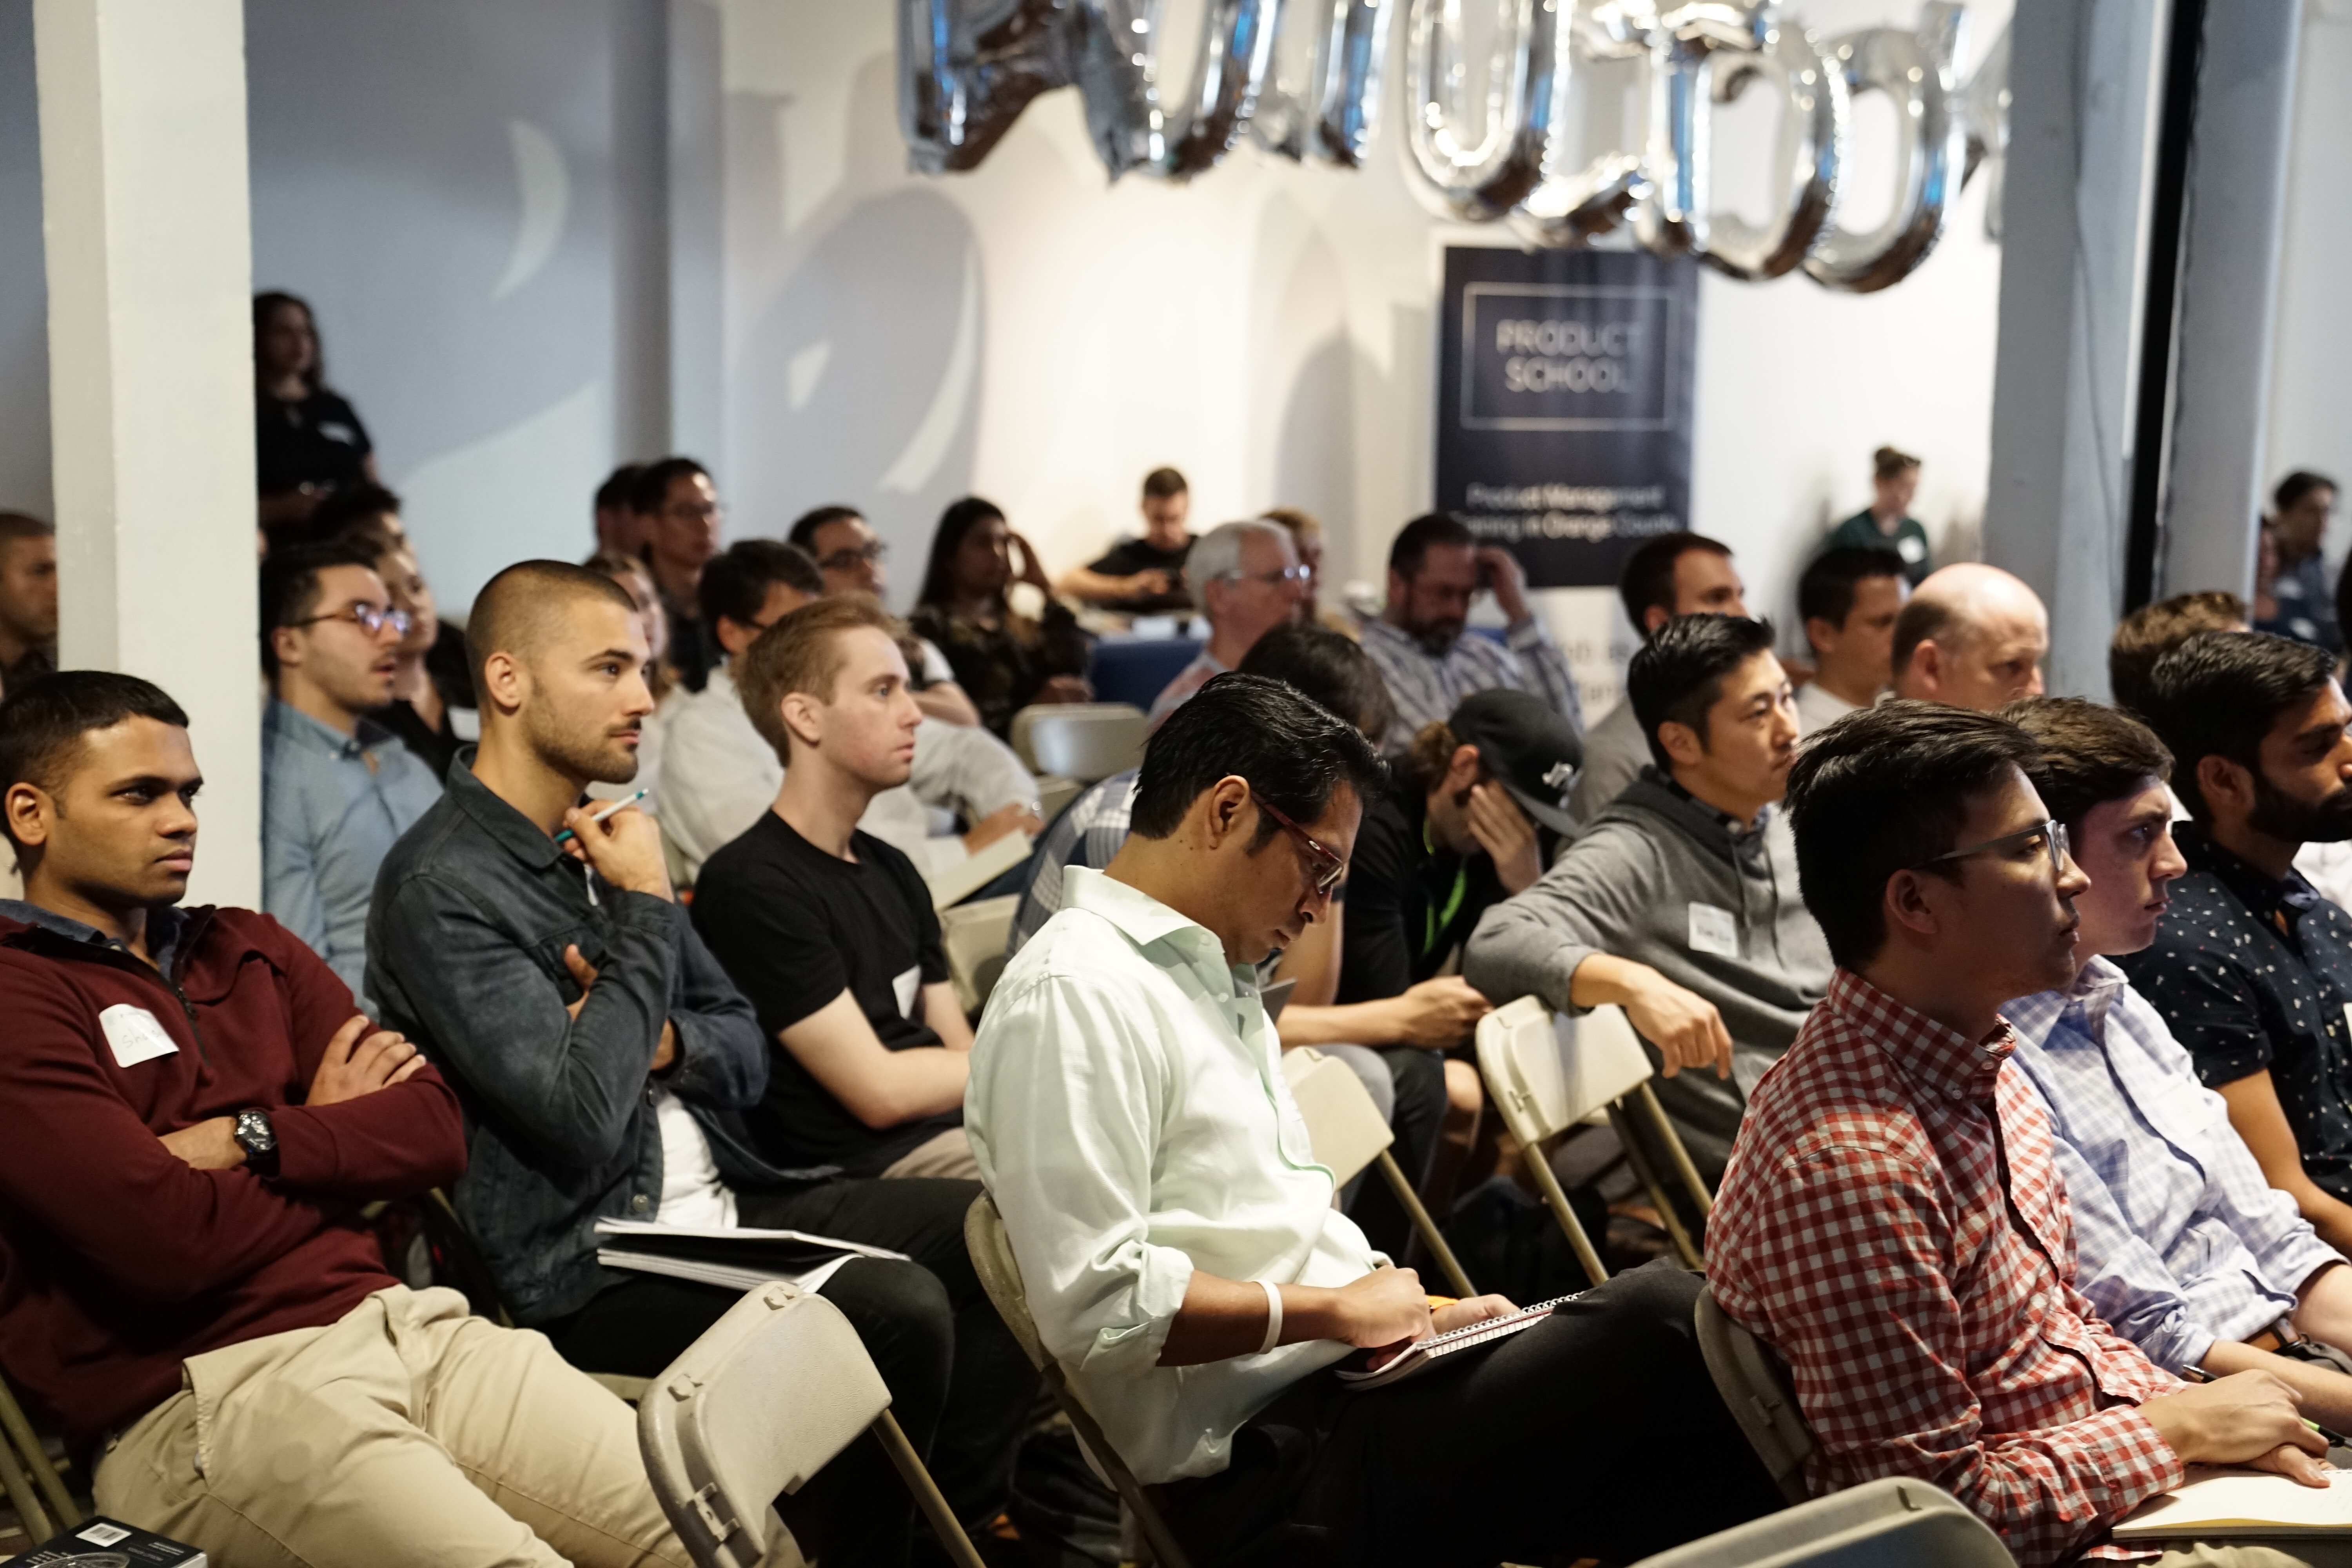 10-considerations-for-picking-the-perfect-keynote-speaker-for-your-next-corporate-event-3